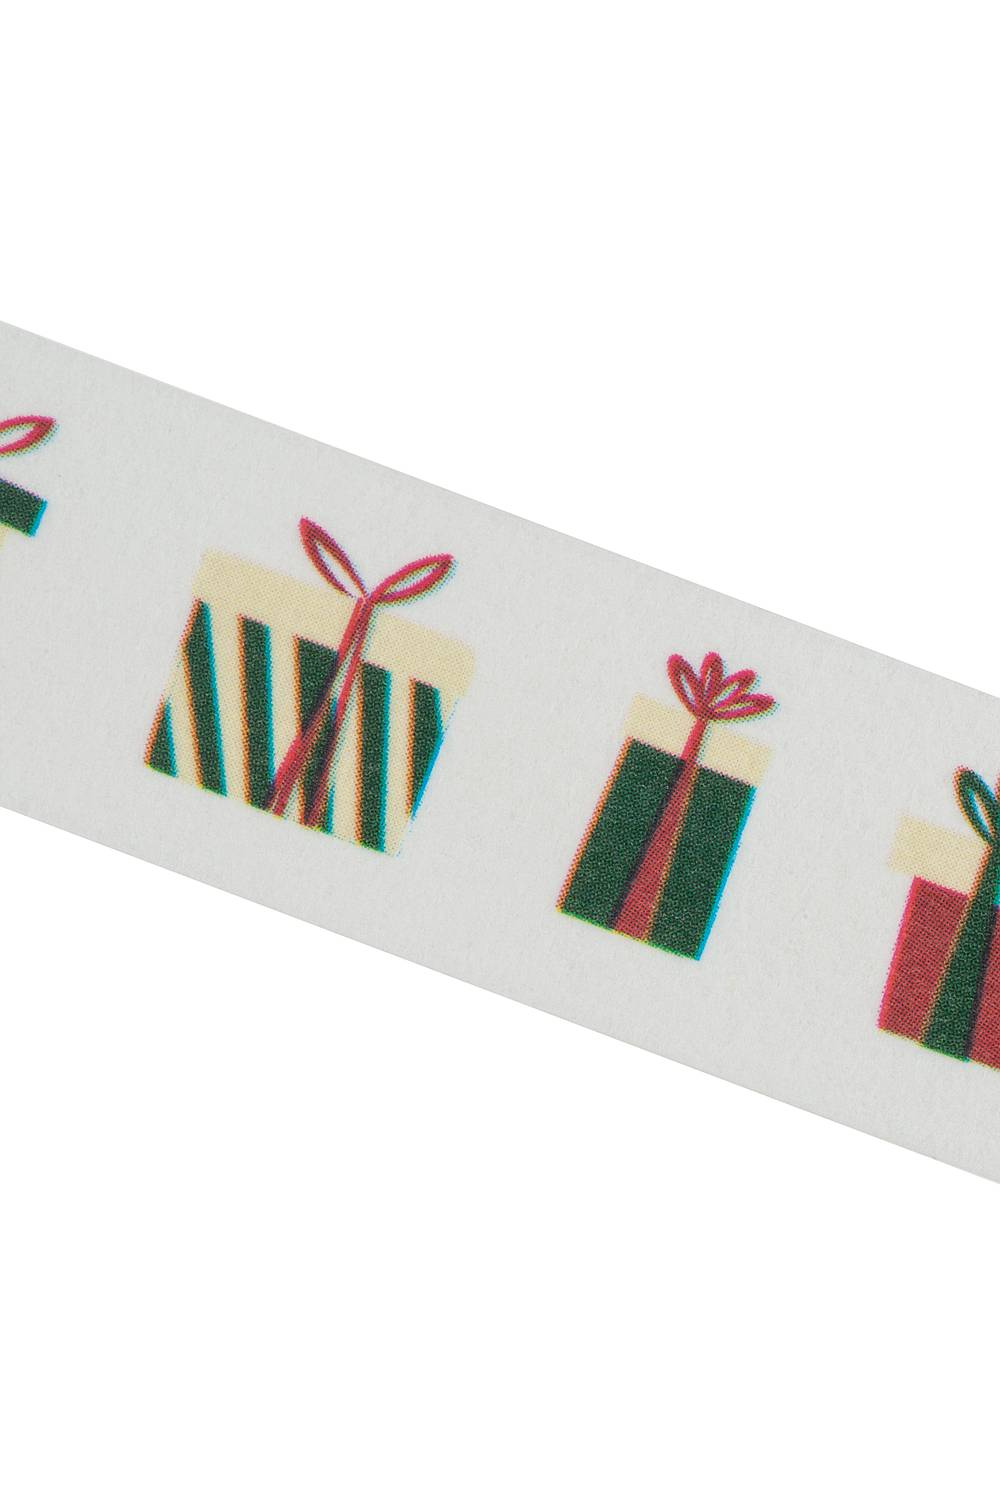 Washi Tape CHRISTMAS GIFTS